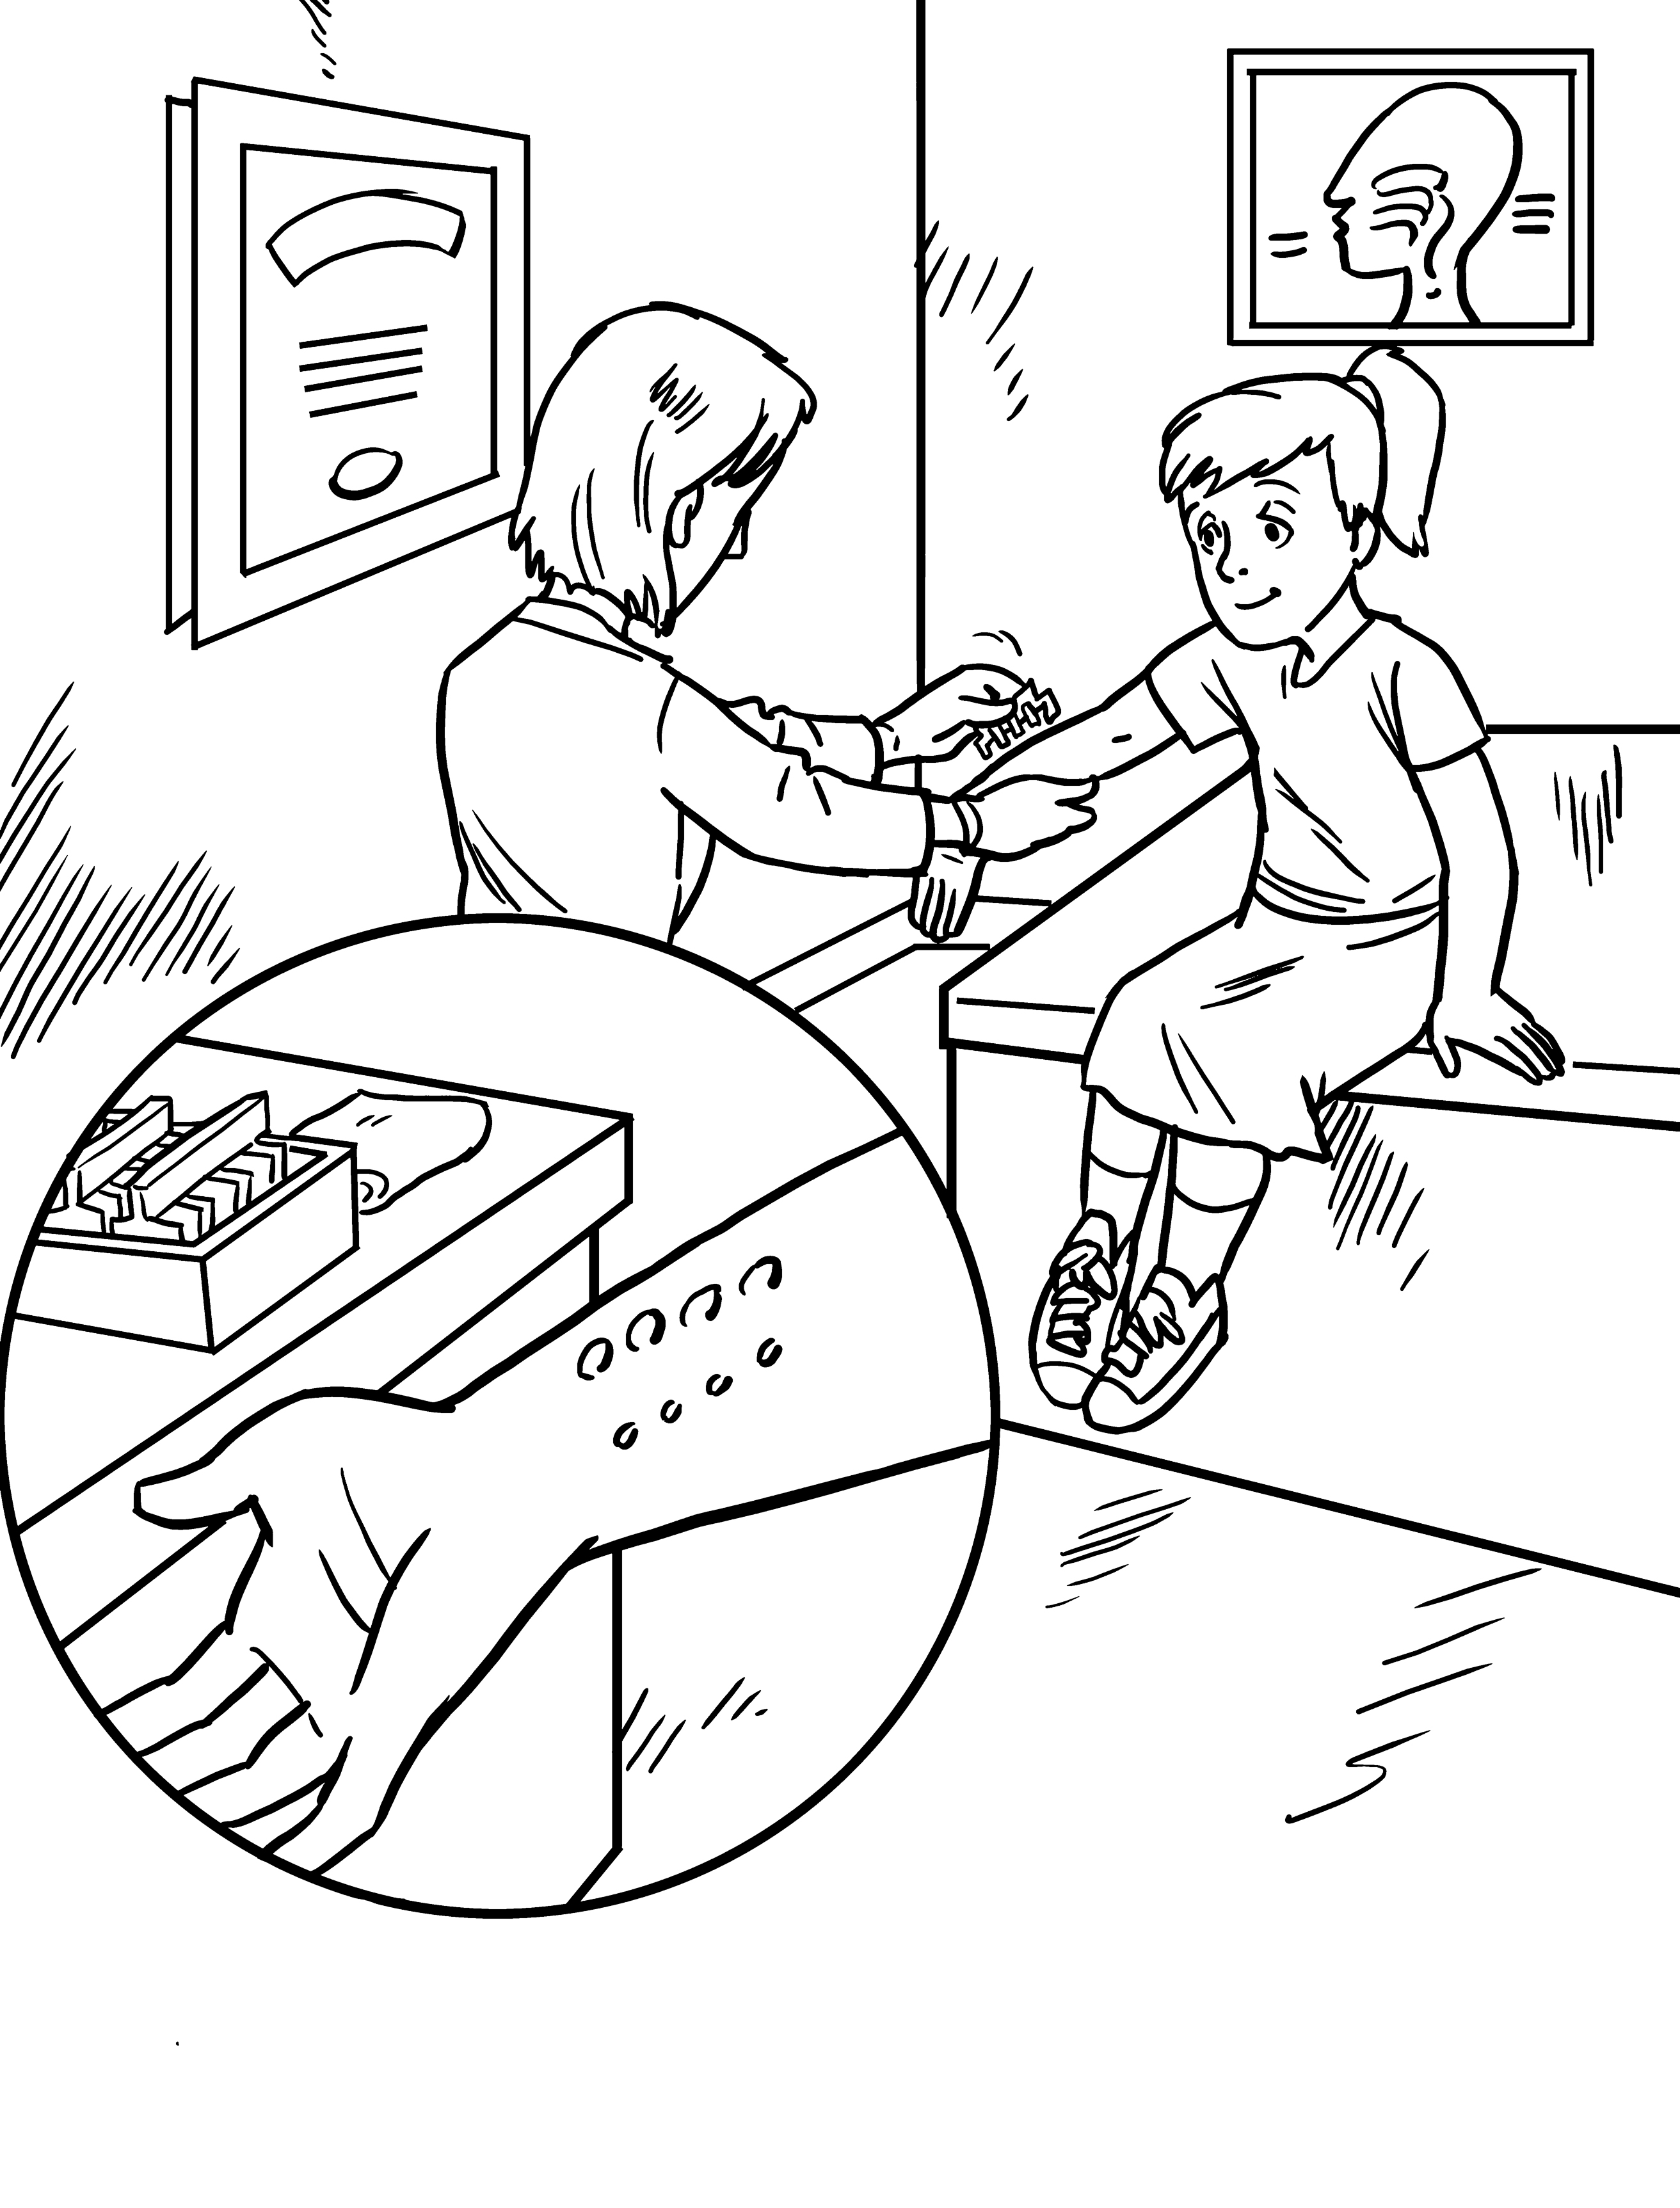 henry the 8th coloring pages - photo#21